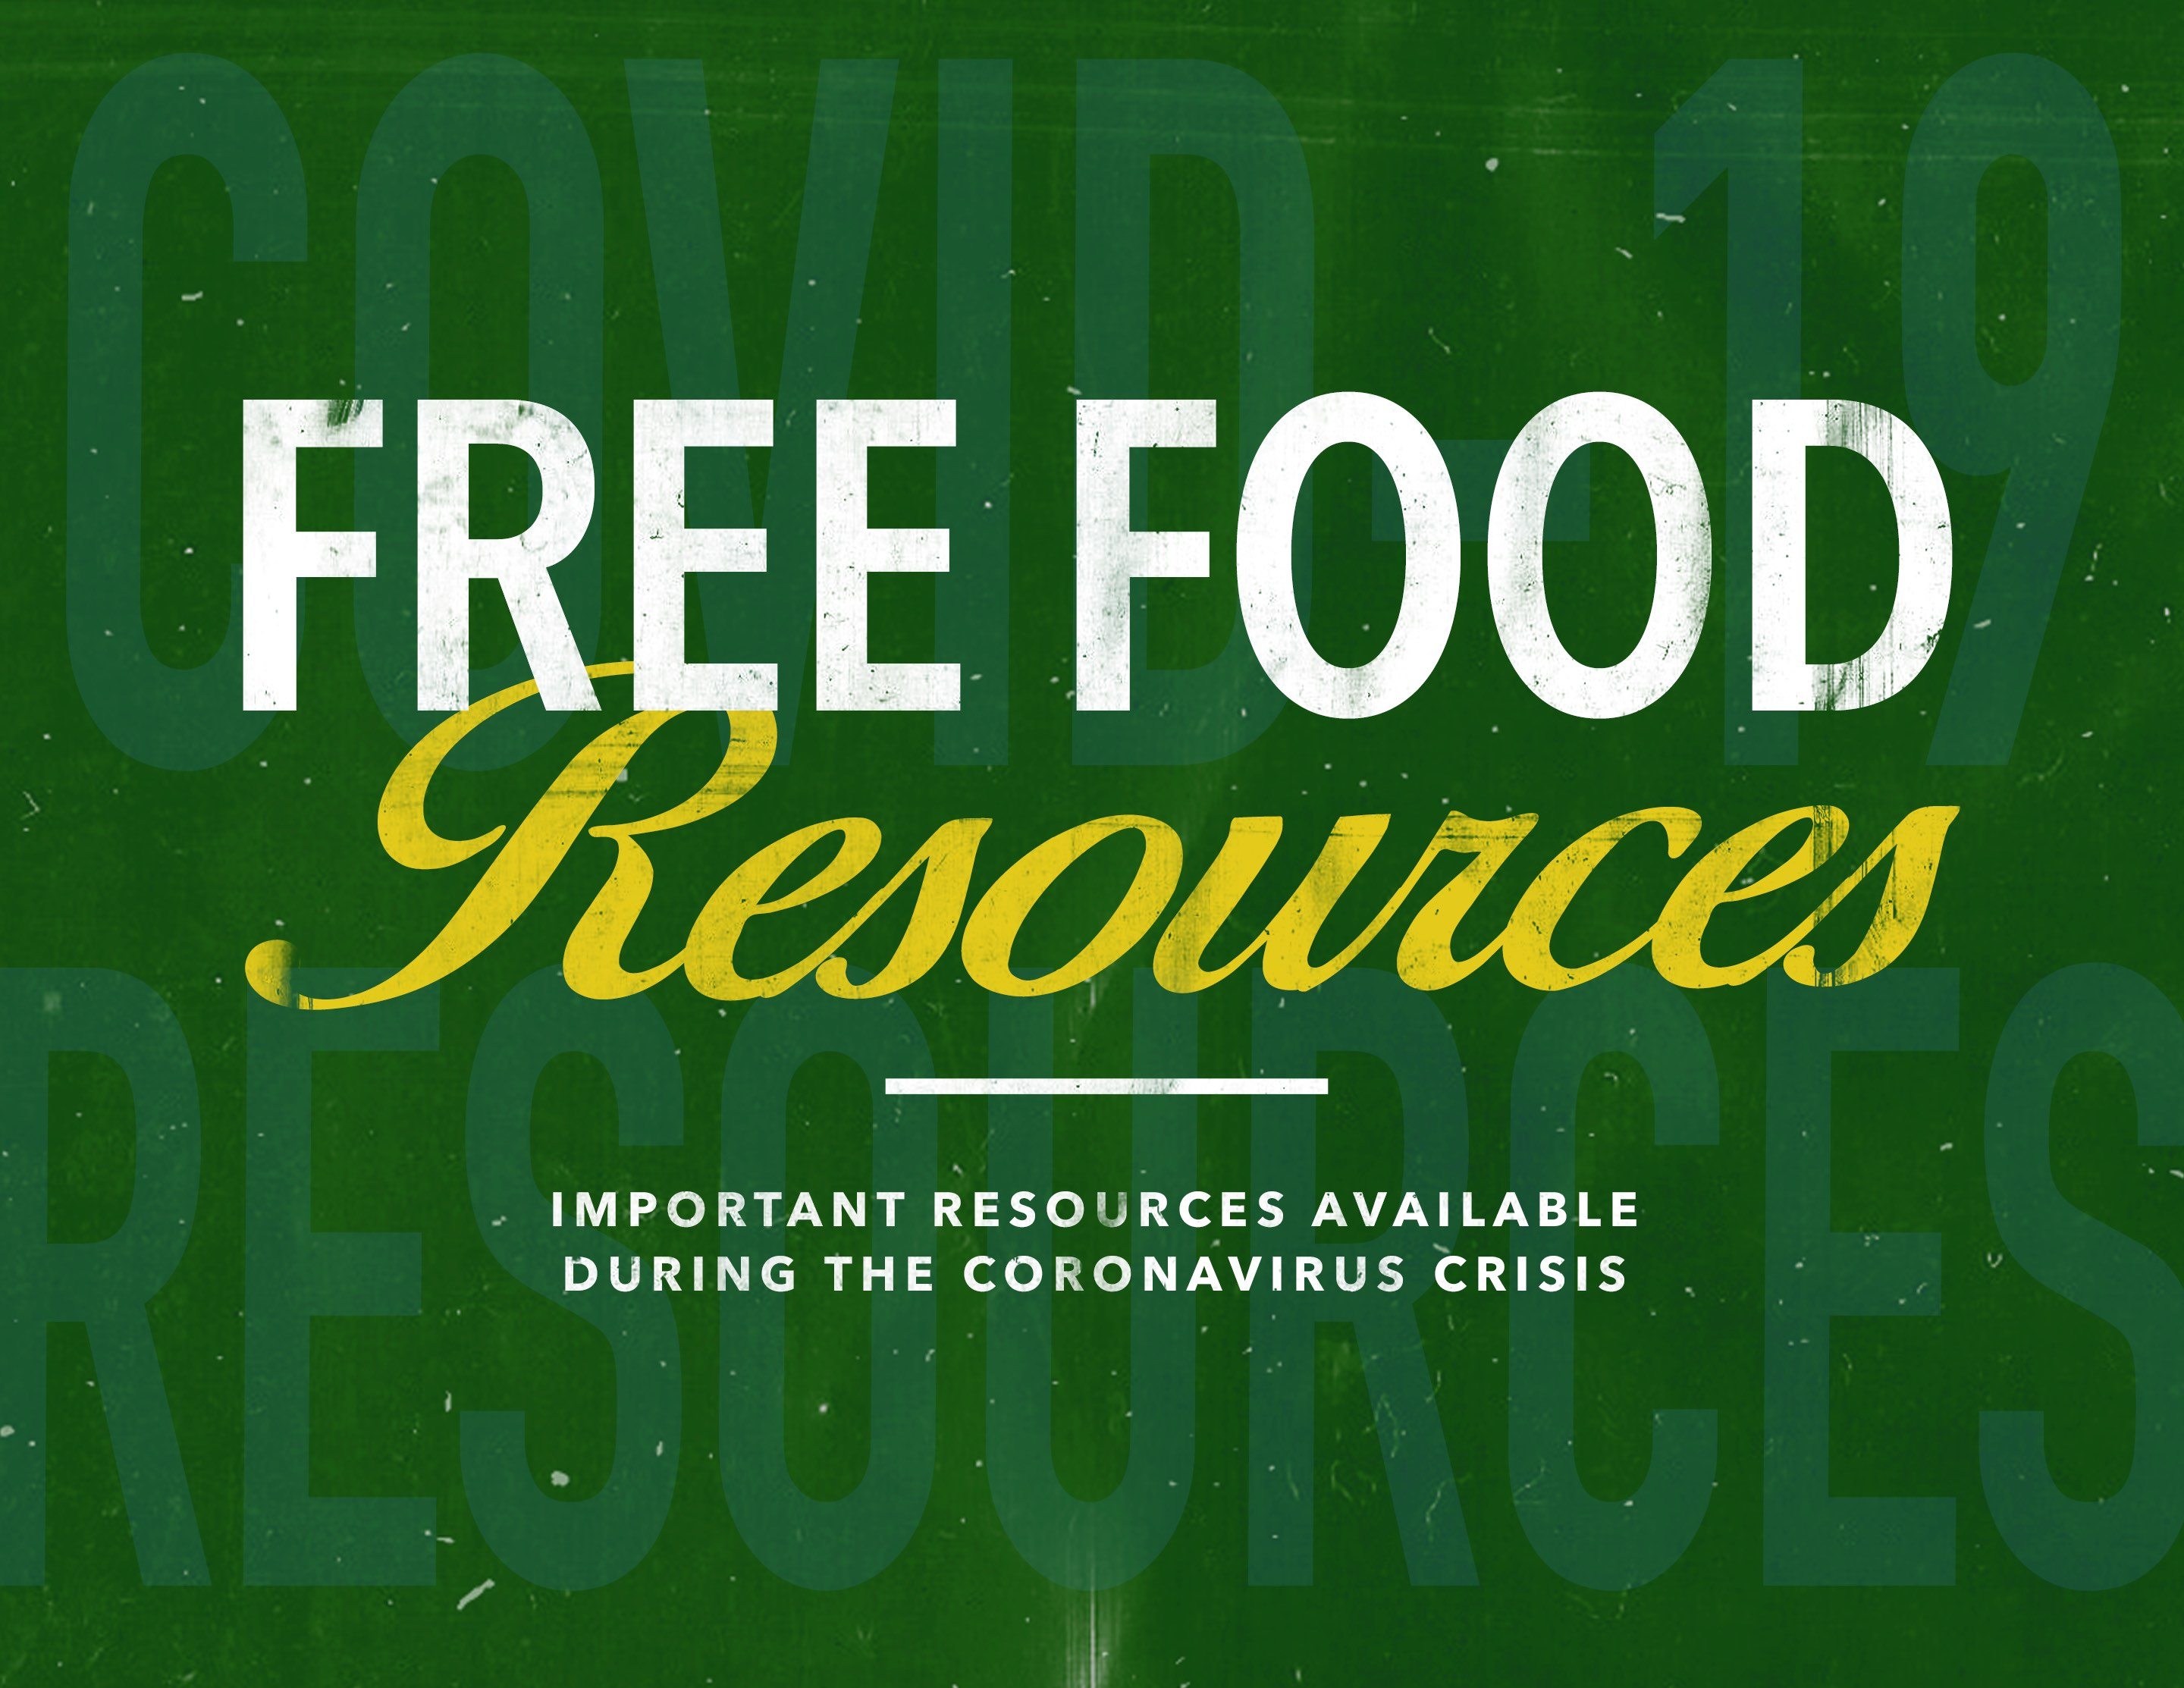 New Salem COVID Food Resources